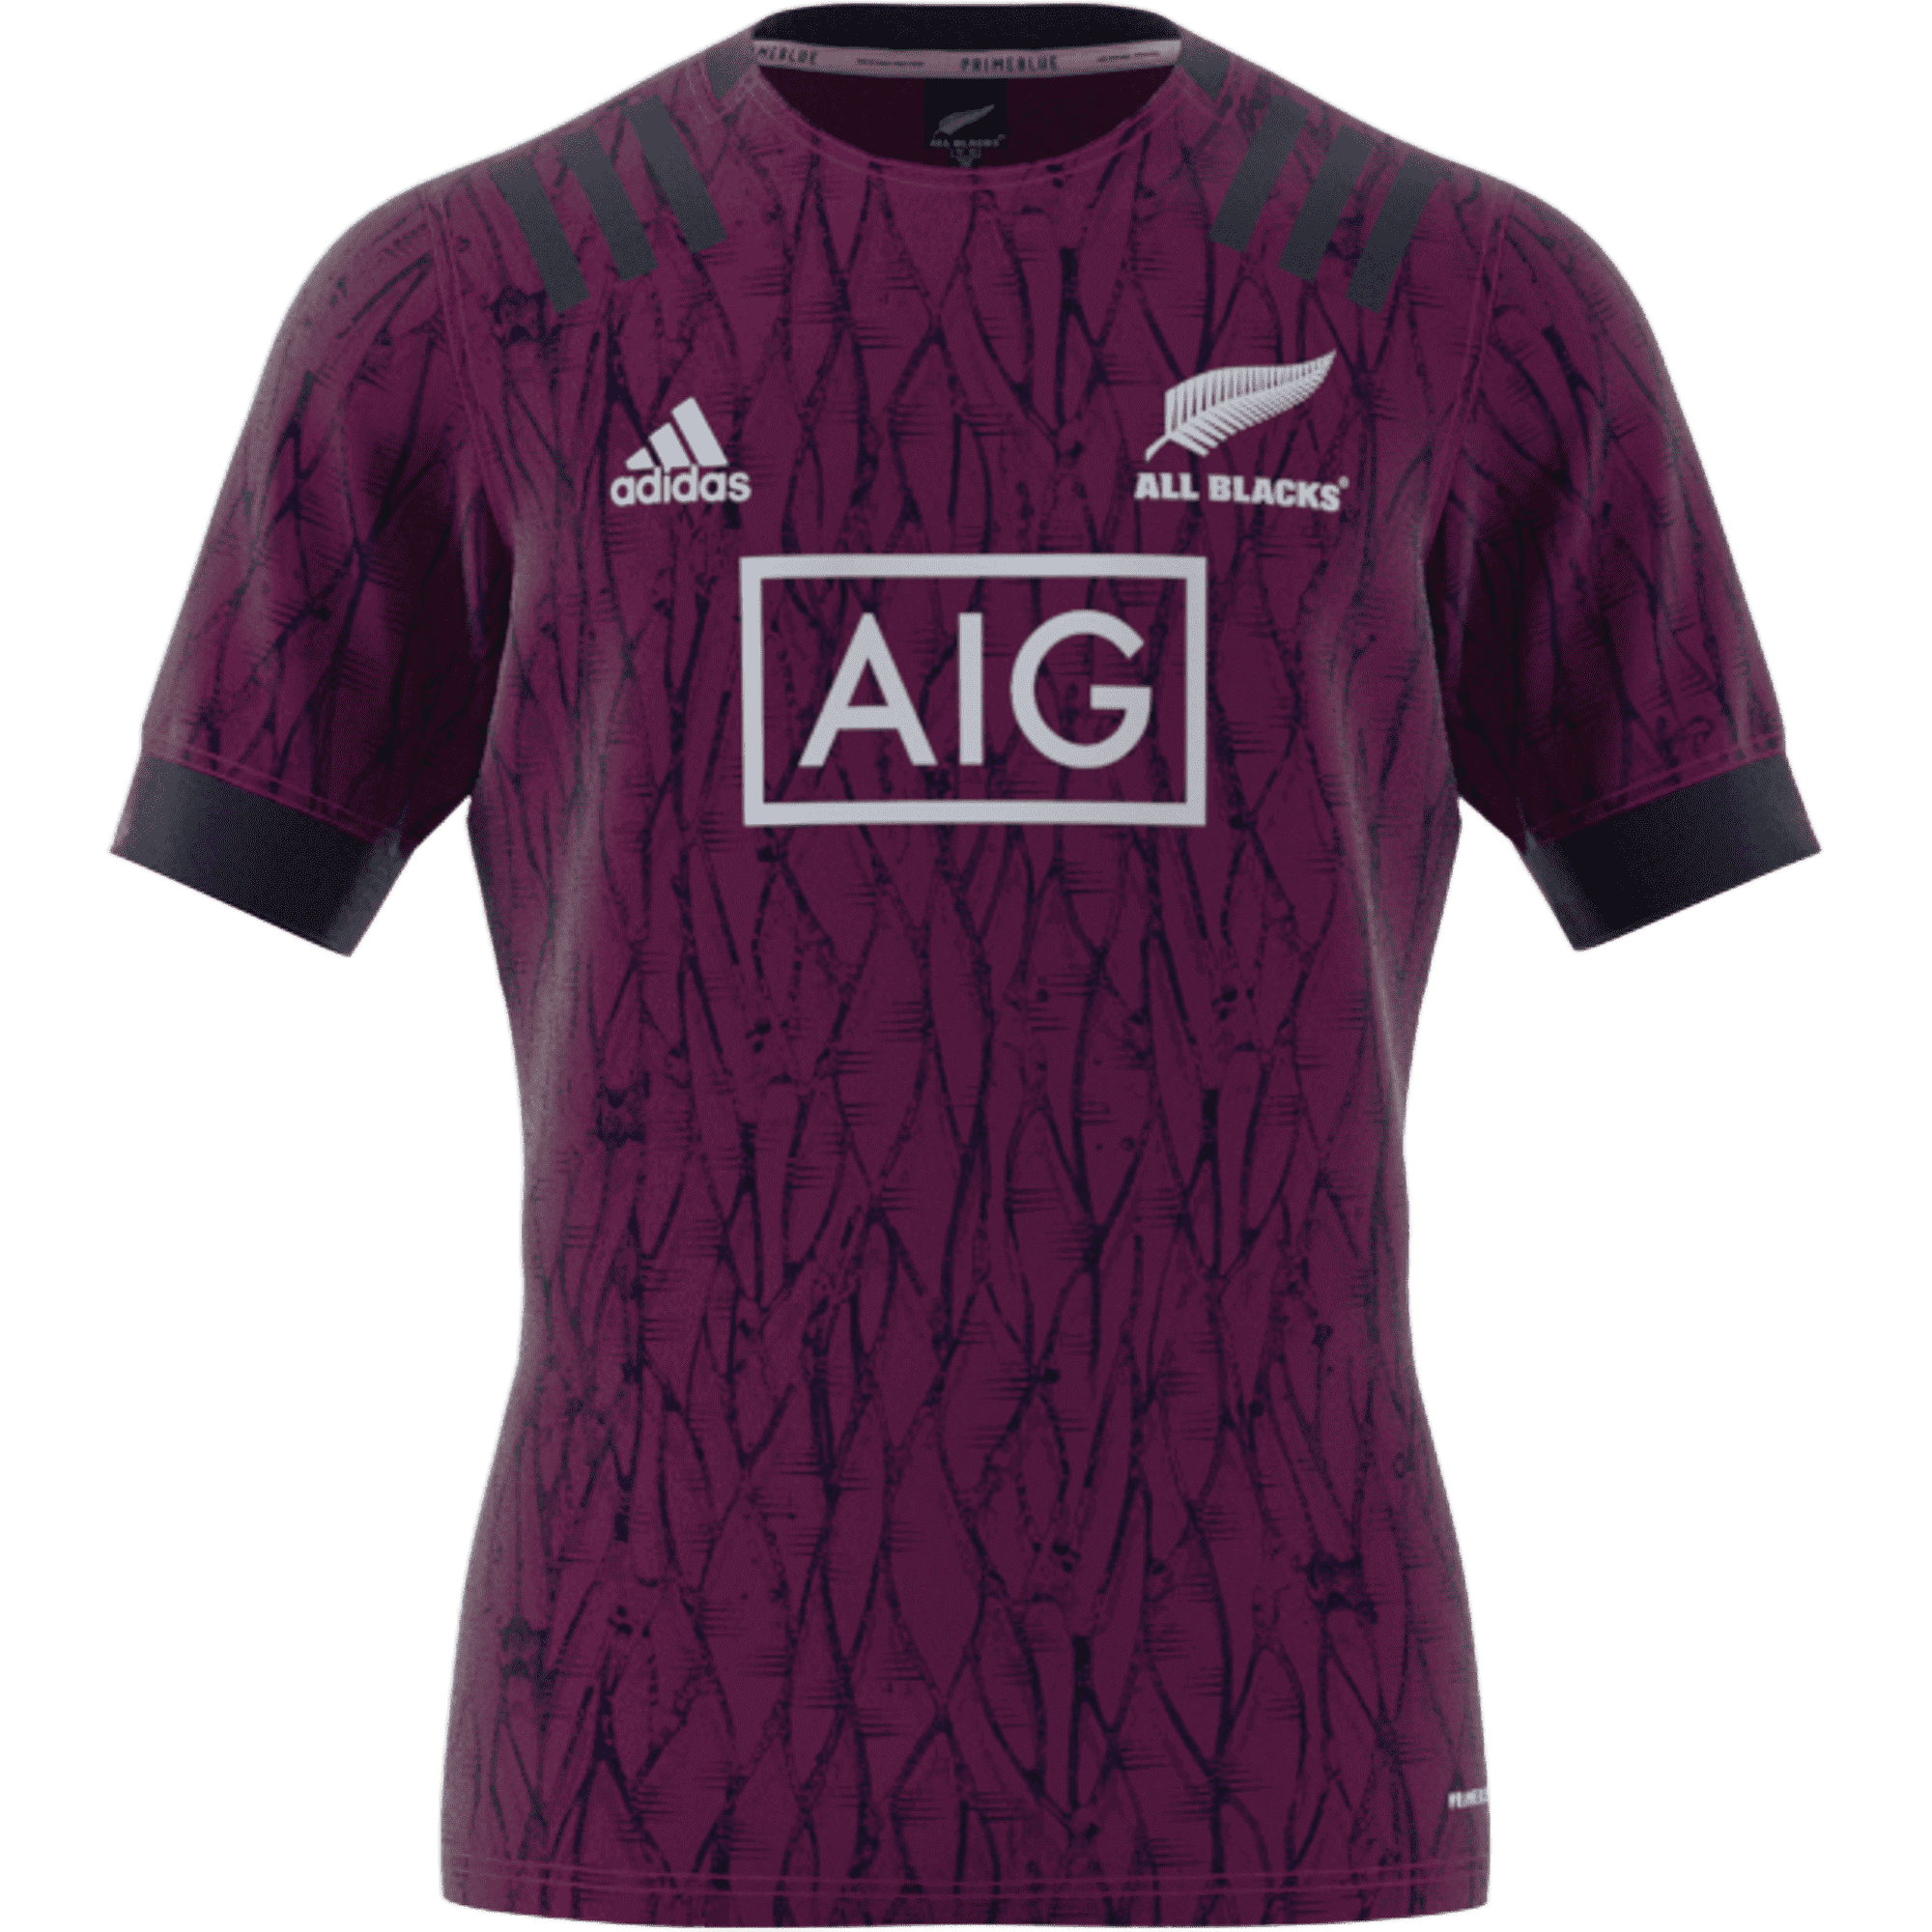 All Blacks Training Jersey Primeblue - Absolute Rugby